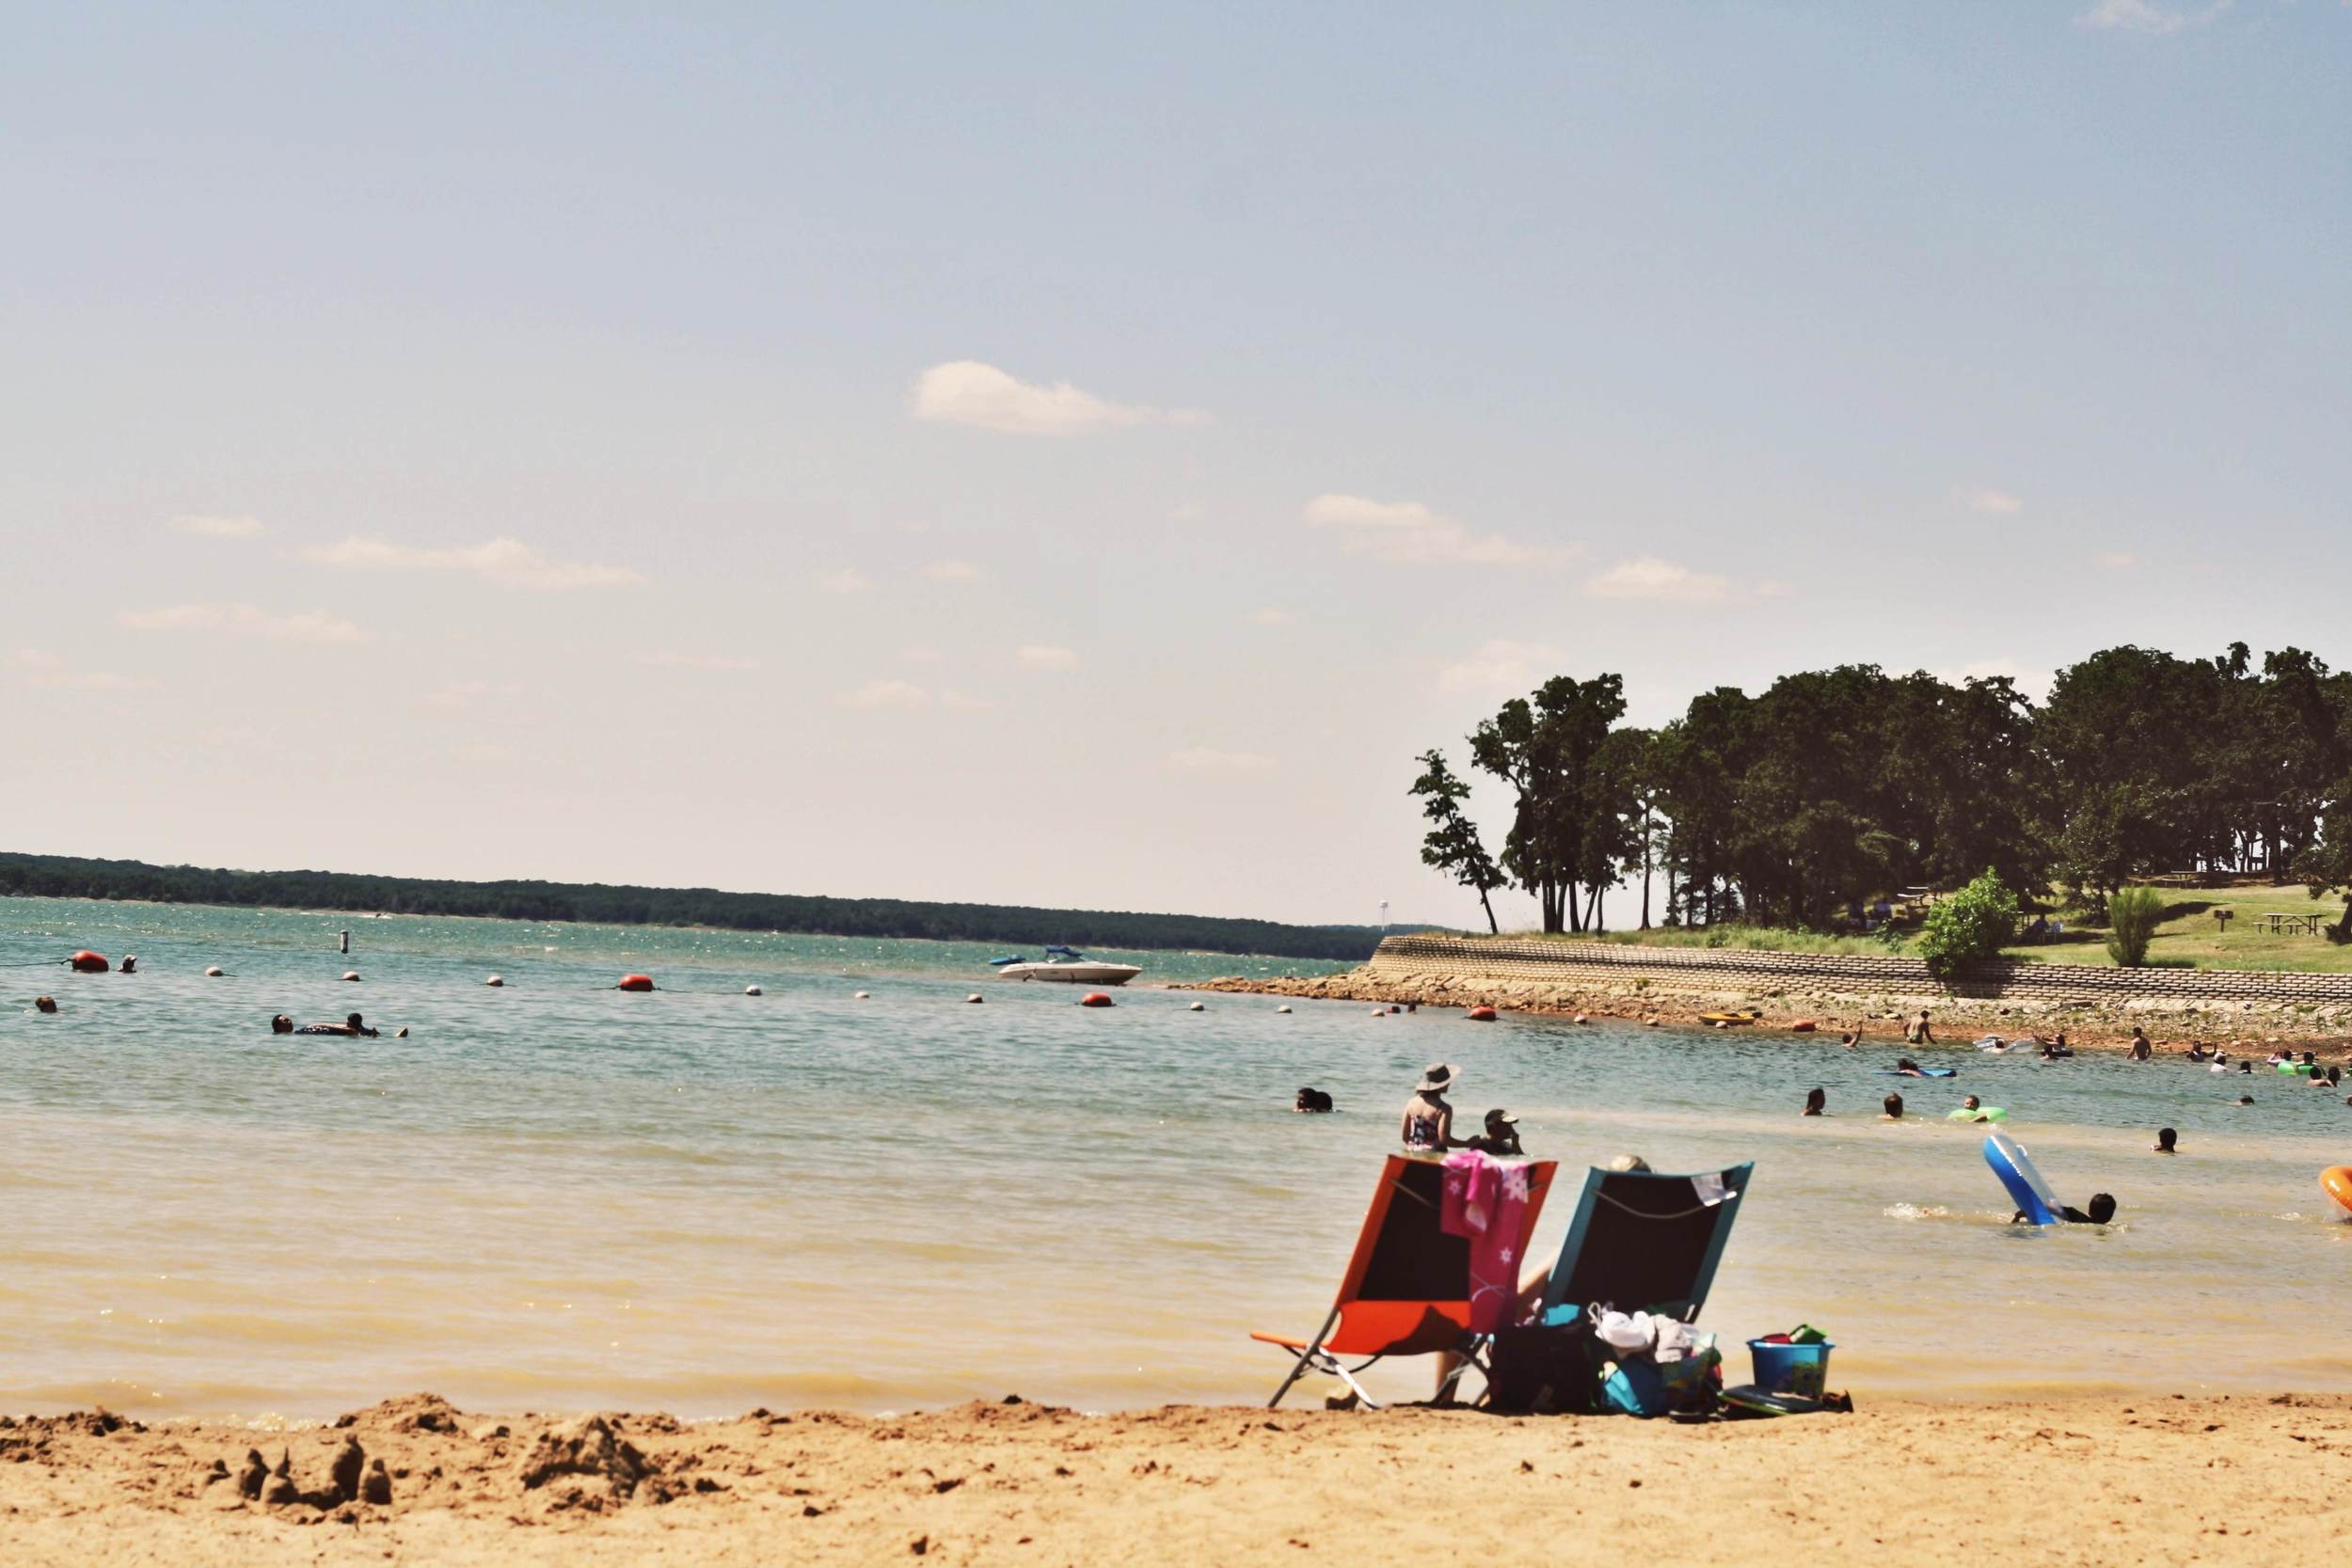 We spent a little time at the oh-so-close beach of lake Ray Roberts.